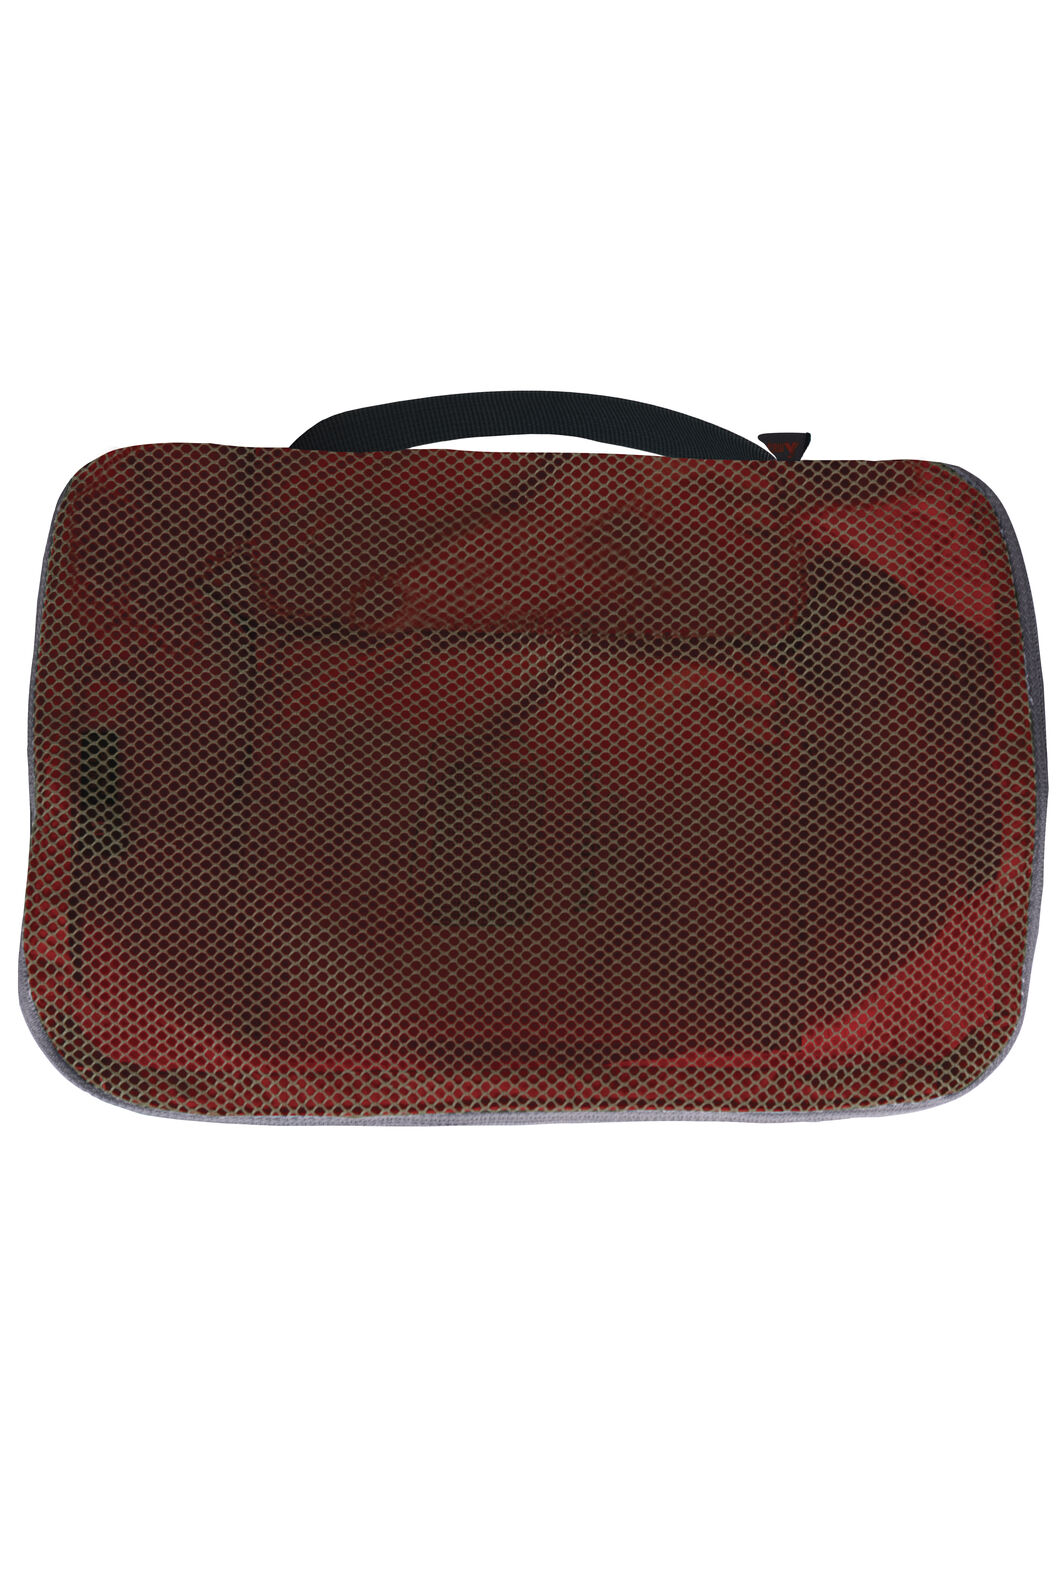 Macpac Large Packing Cell, Jester Red, hi-res